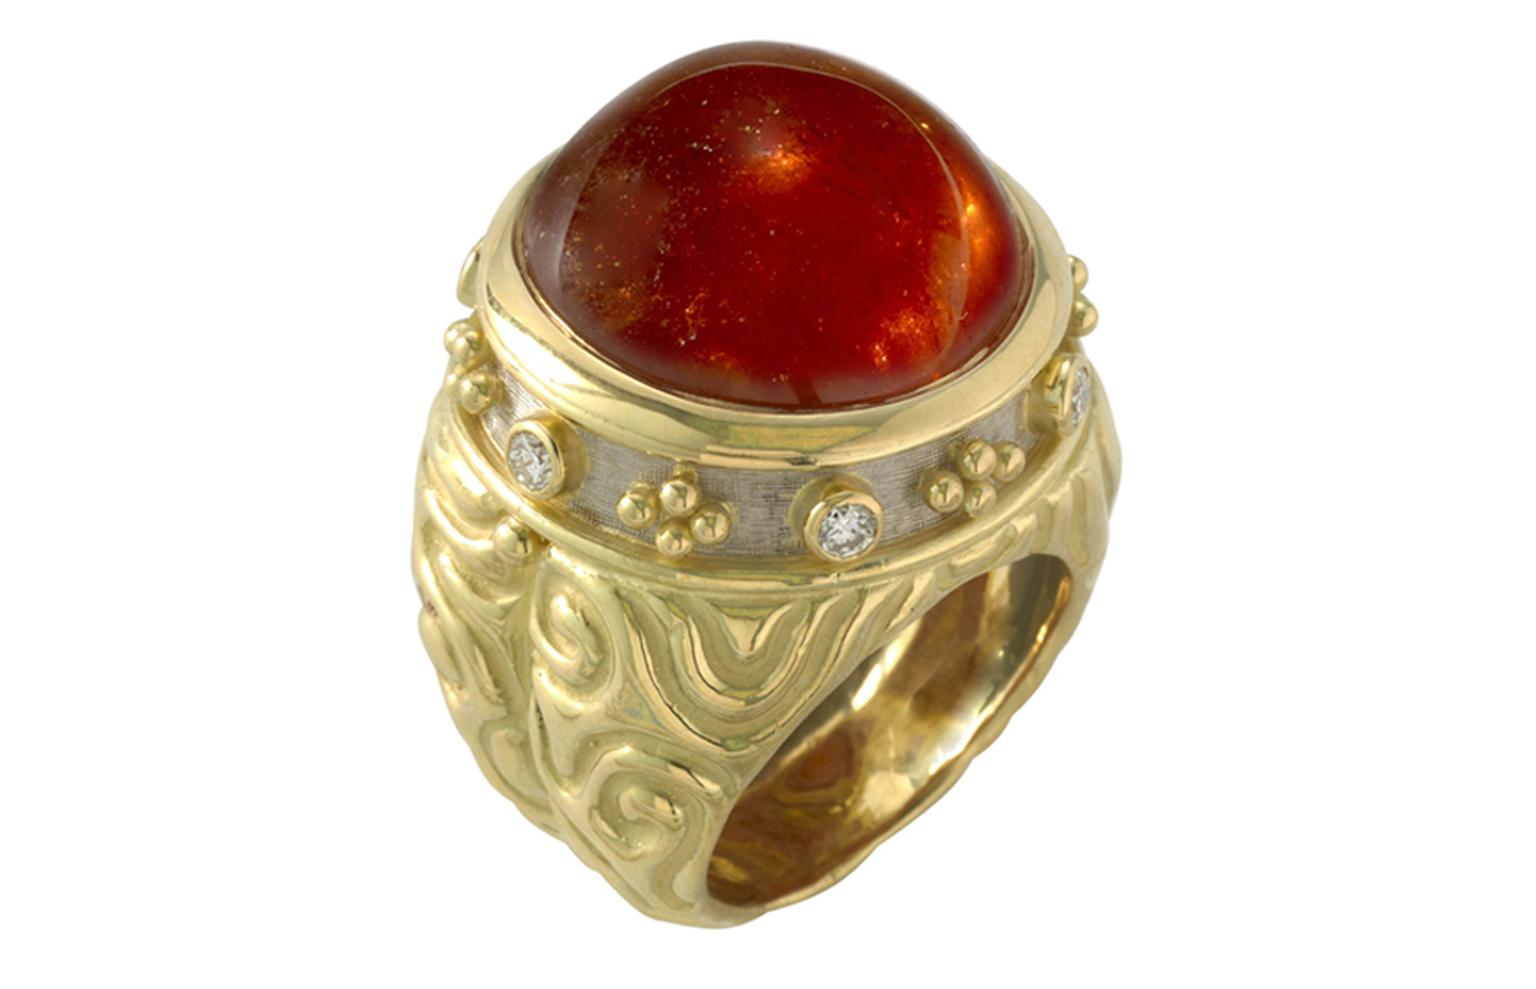 ELIZABETH GAGE, Charlemagne Ring, a glowing round orange cabochon garnet surrounded with diamonds and bead detail in yellow and white gold, with carved molten gold sides. £11,400